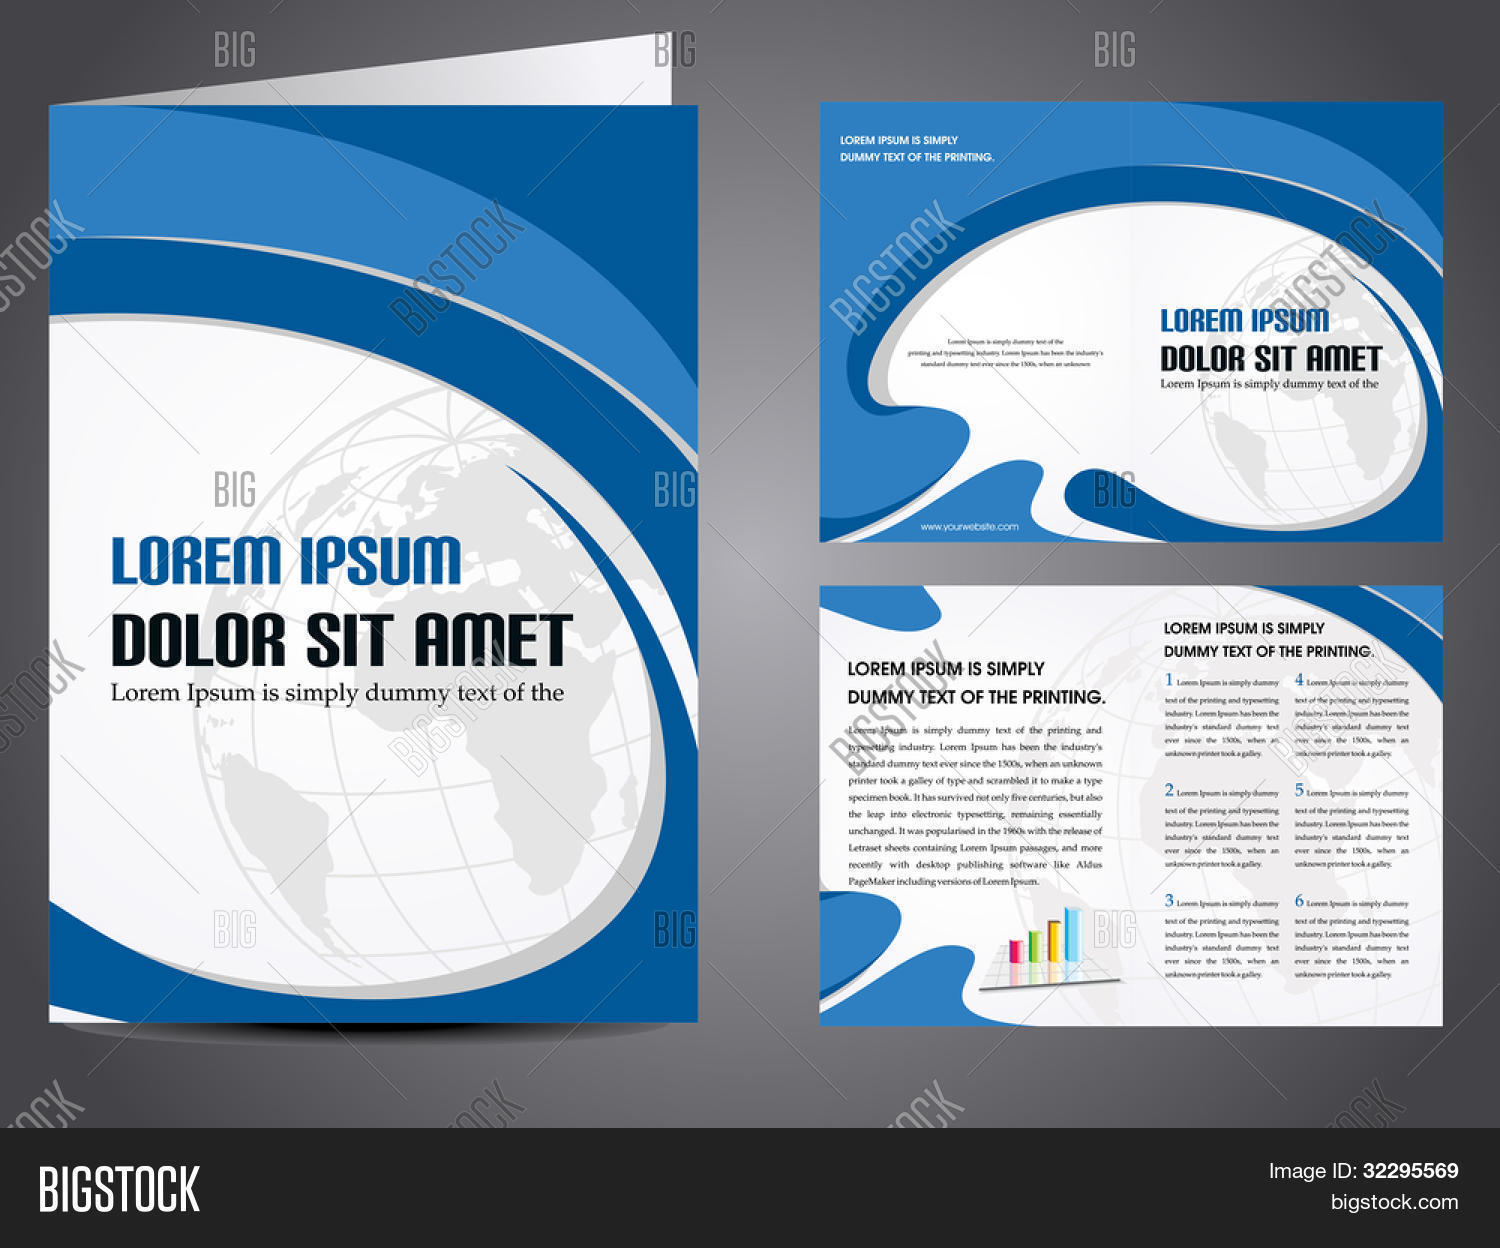 professional business catalog template or corporate brochure professional business catalog template or corporate brochure design inner pages for document publishing